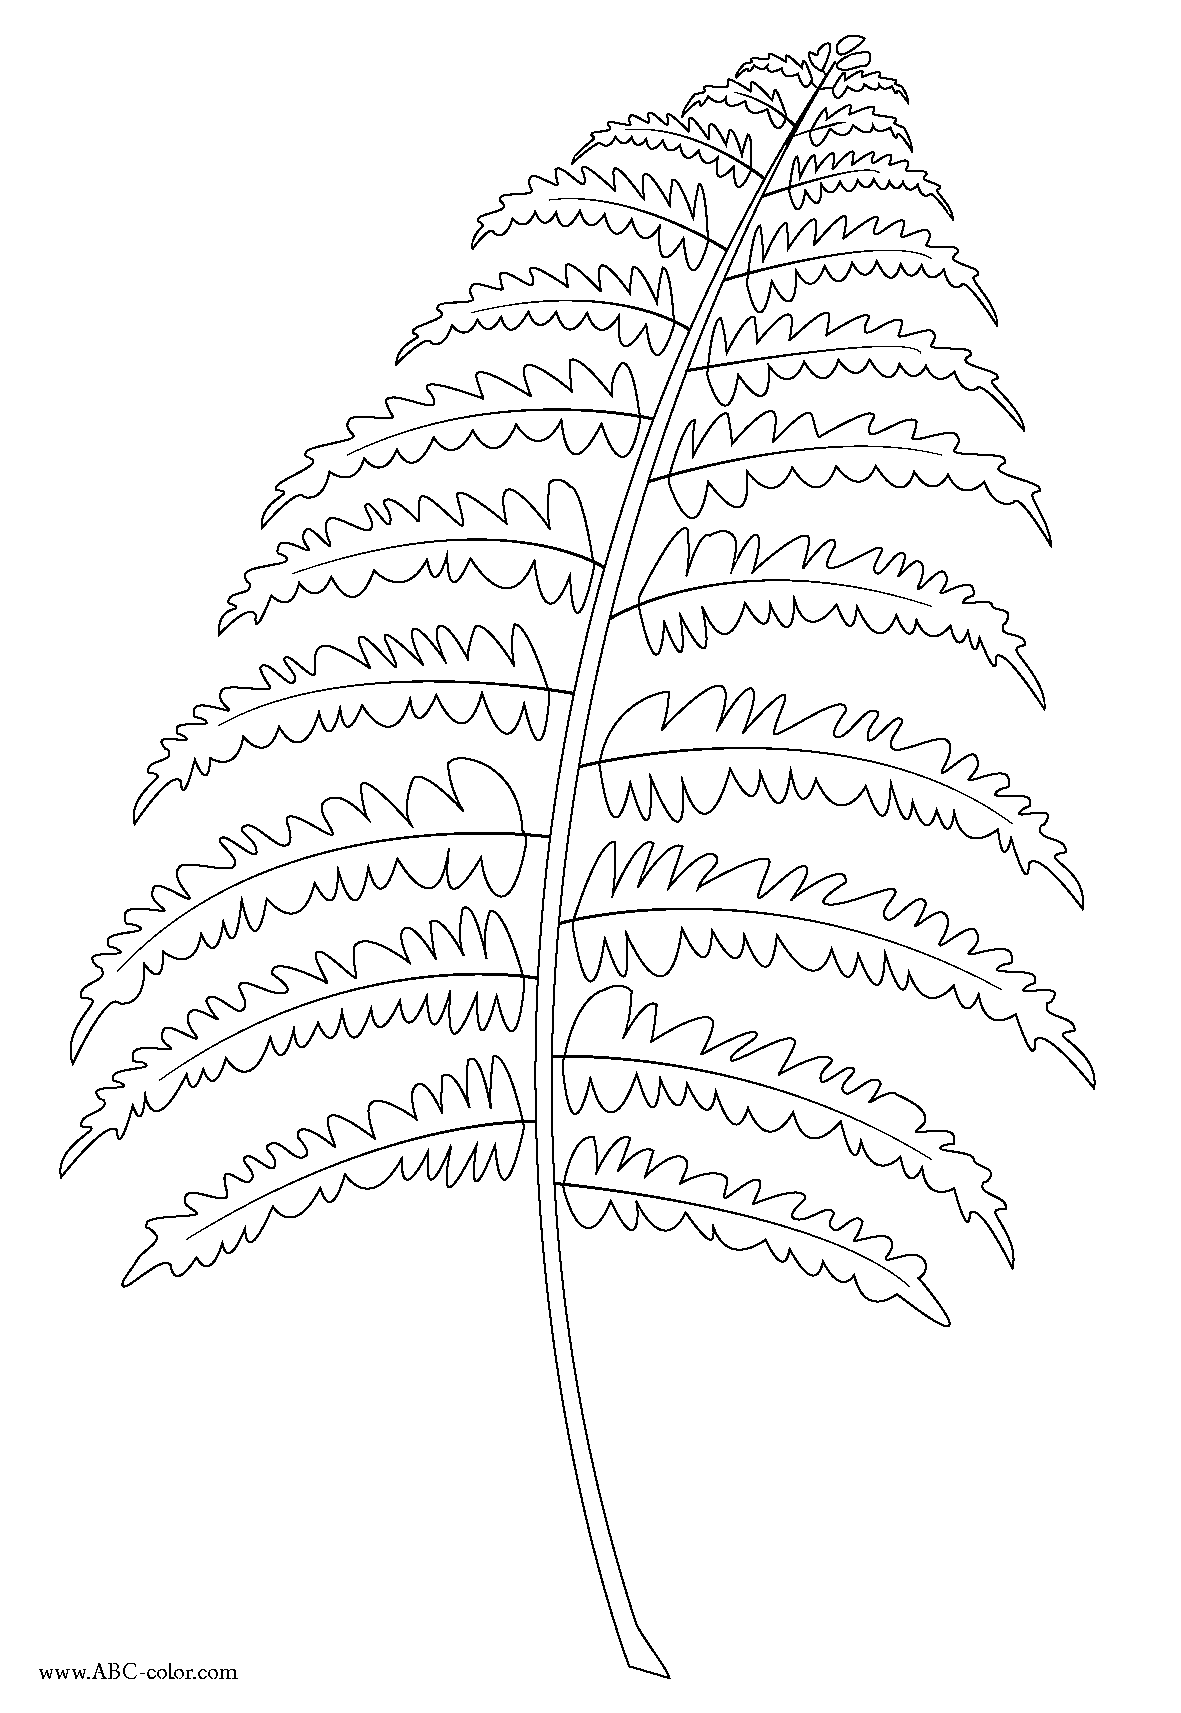 Fern coloring #3, Download drawings